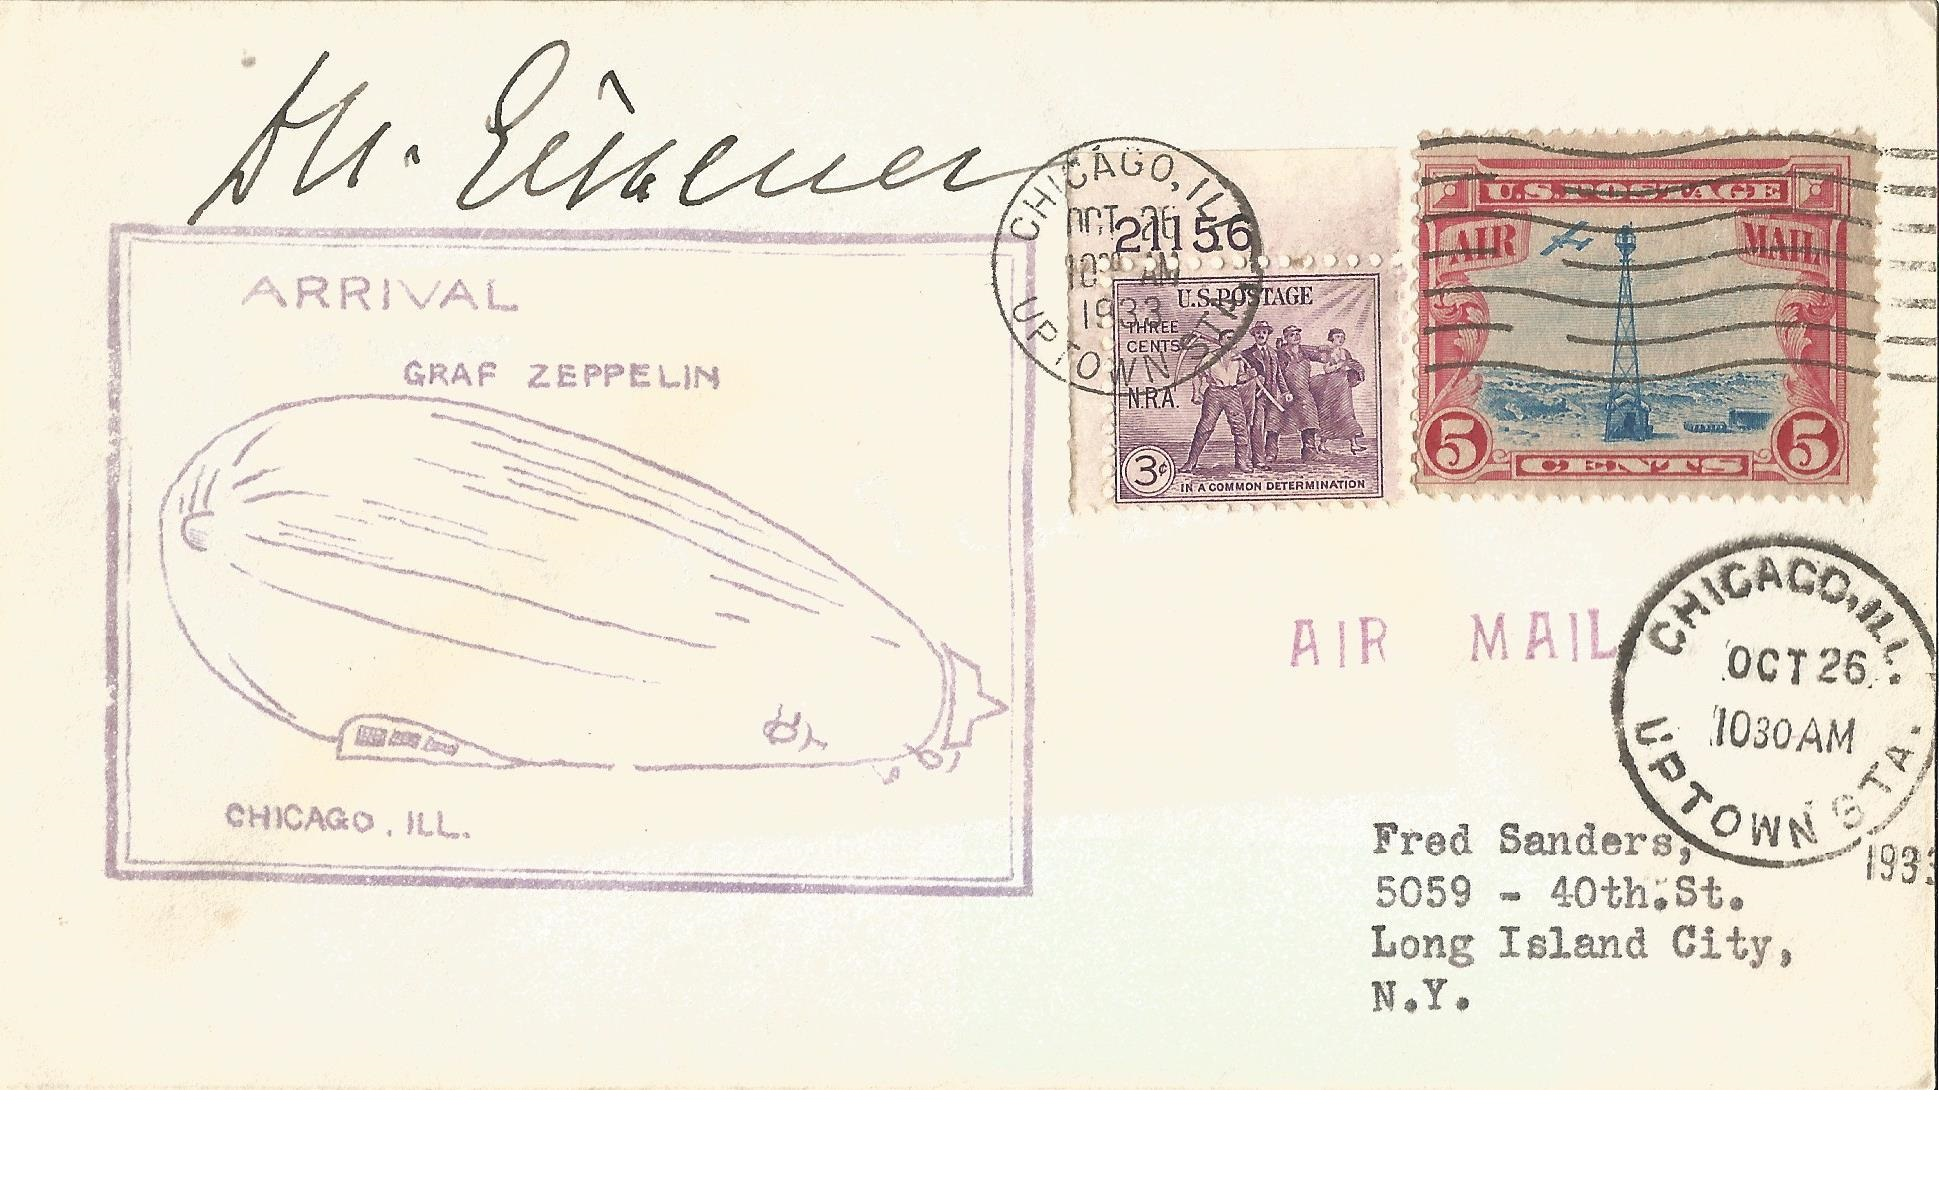 Lot 37 - Dr. Hugo Eckener Zeppelin legend signed 1933 Graz Zeppelin arrival in Chicago cover, with 26/10/33